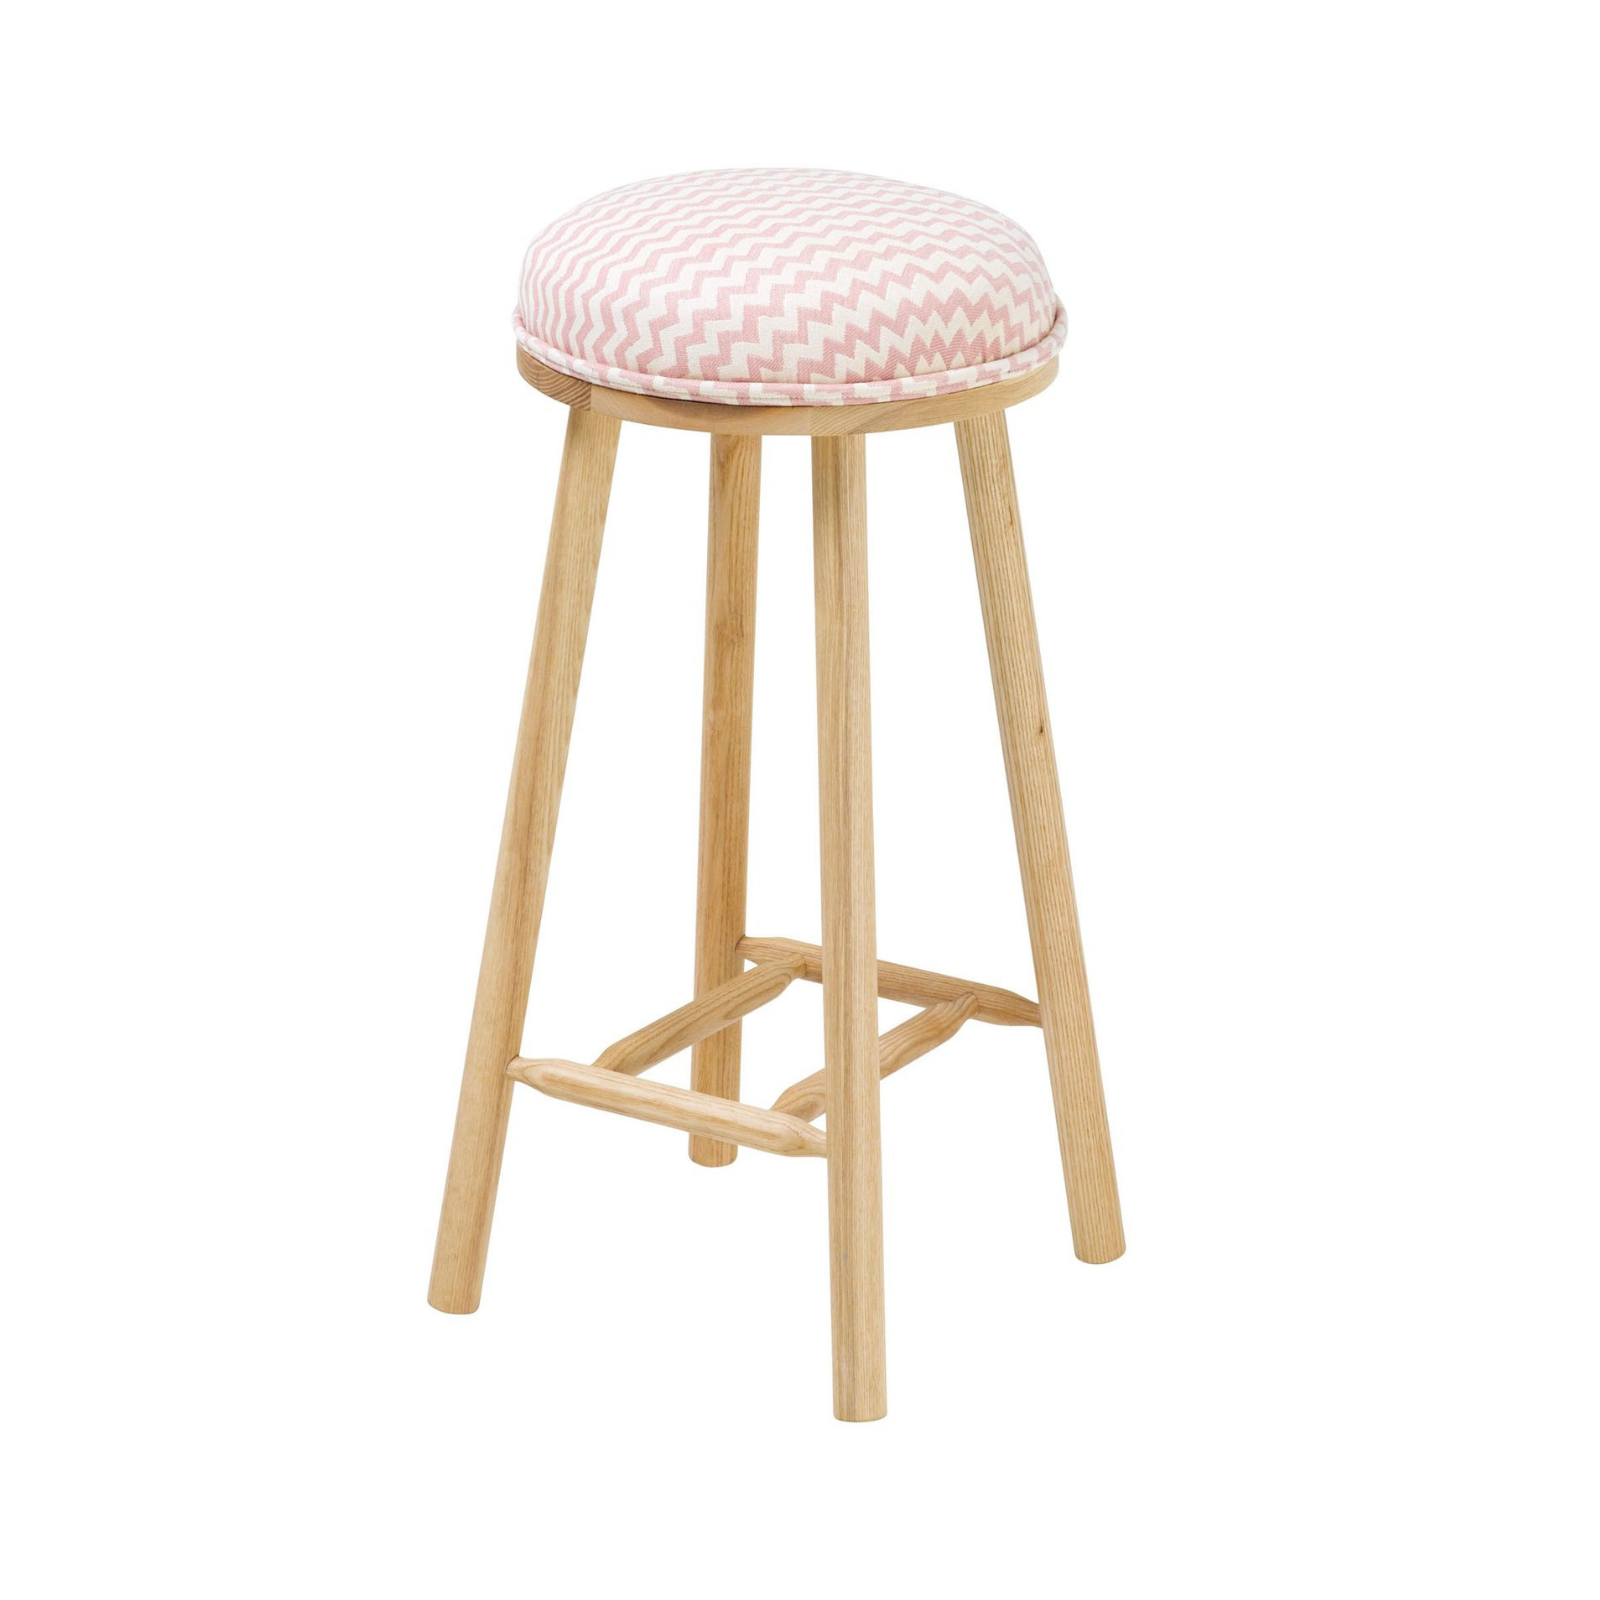 The Turner Counter Stool